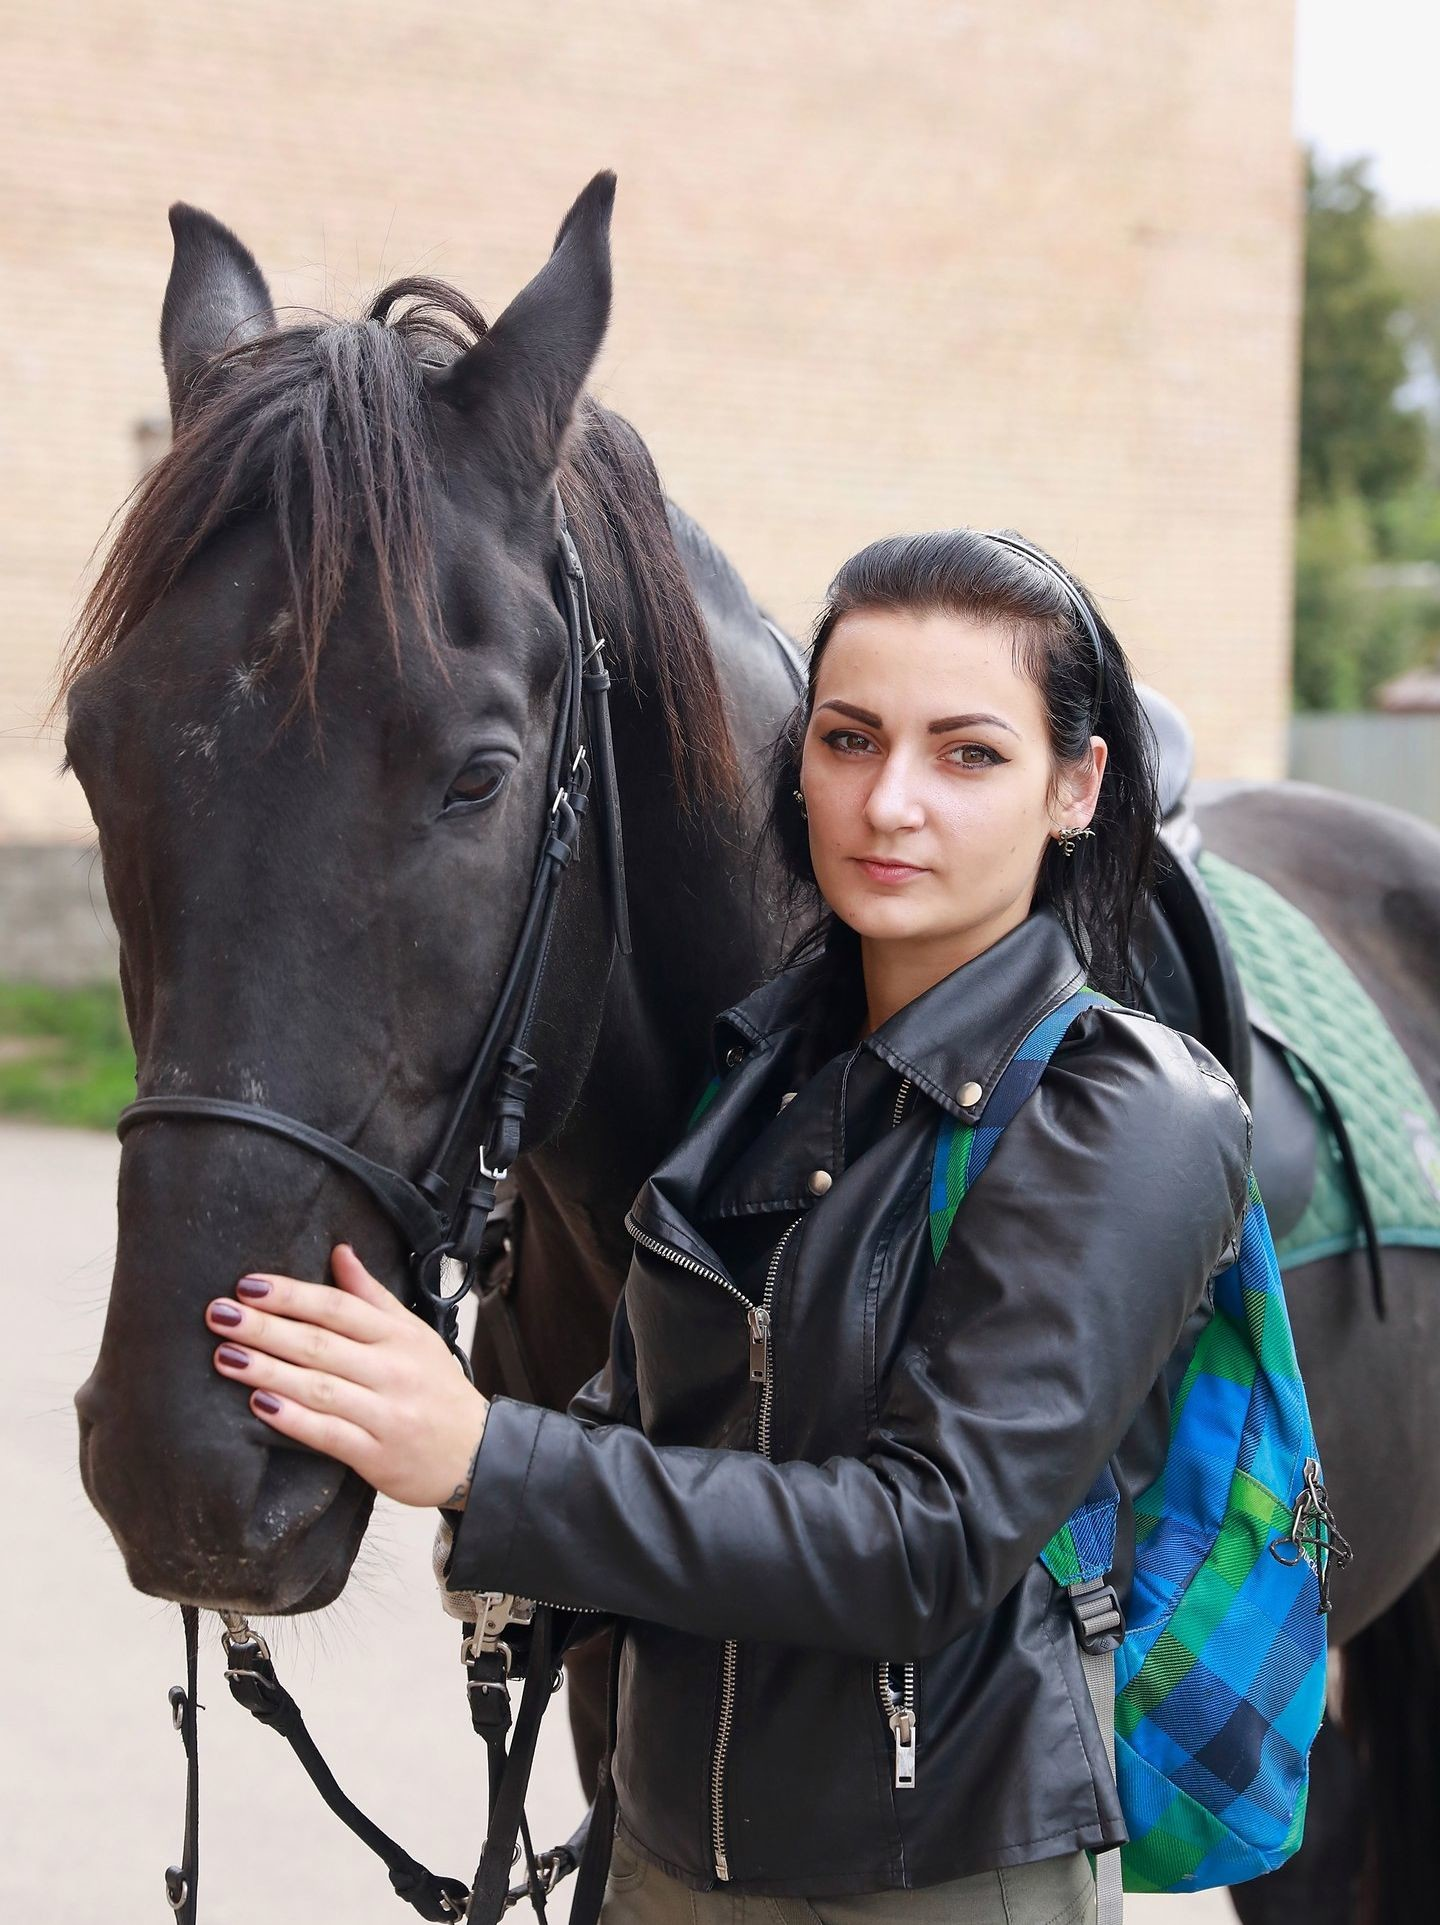 Maria Rubtsova with her horse.